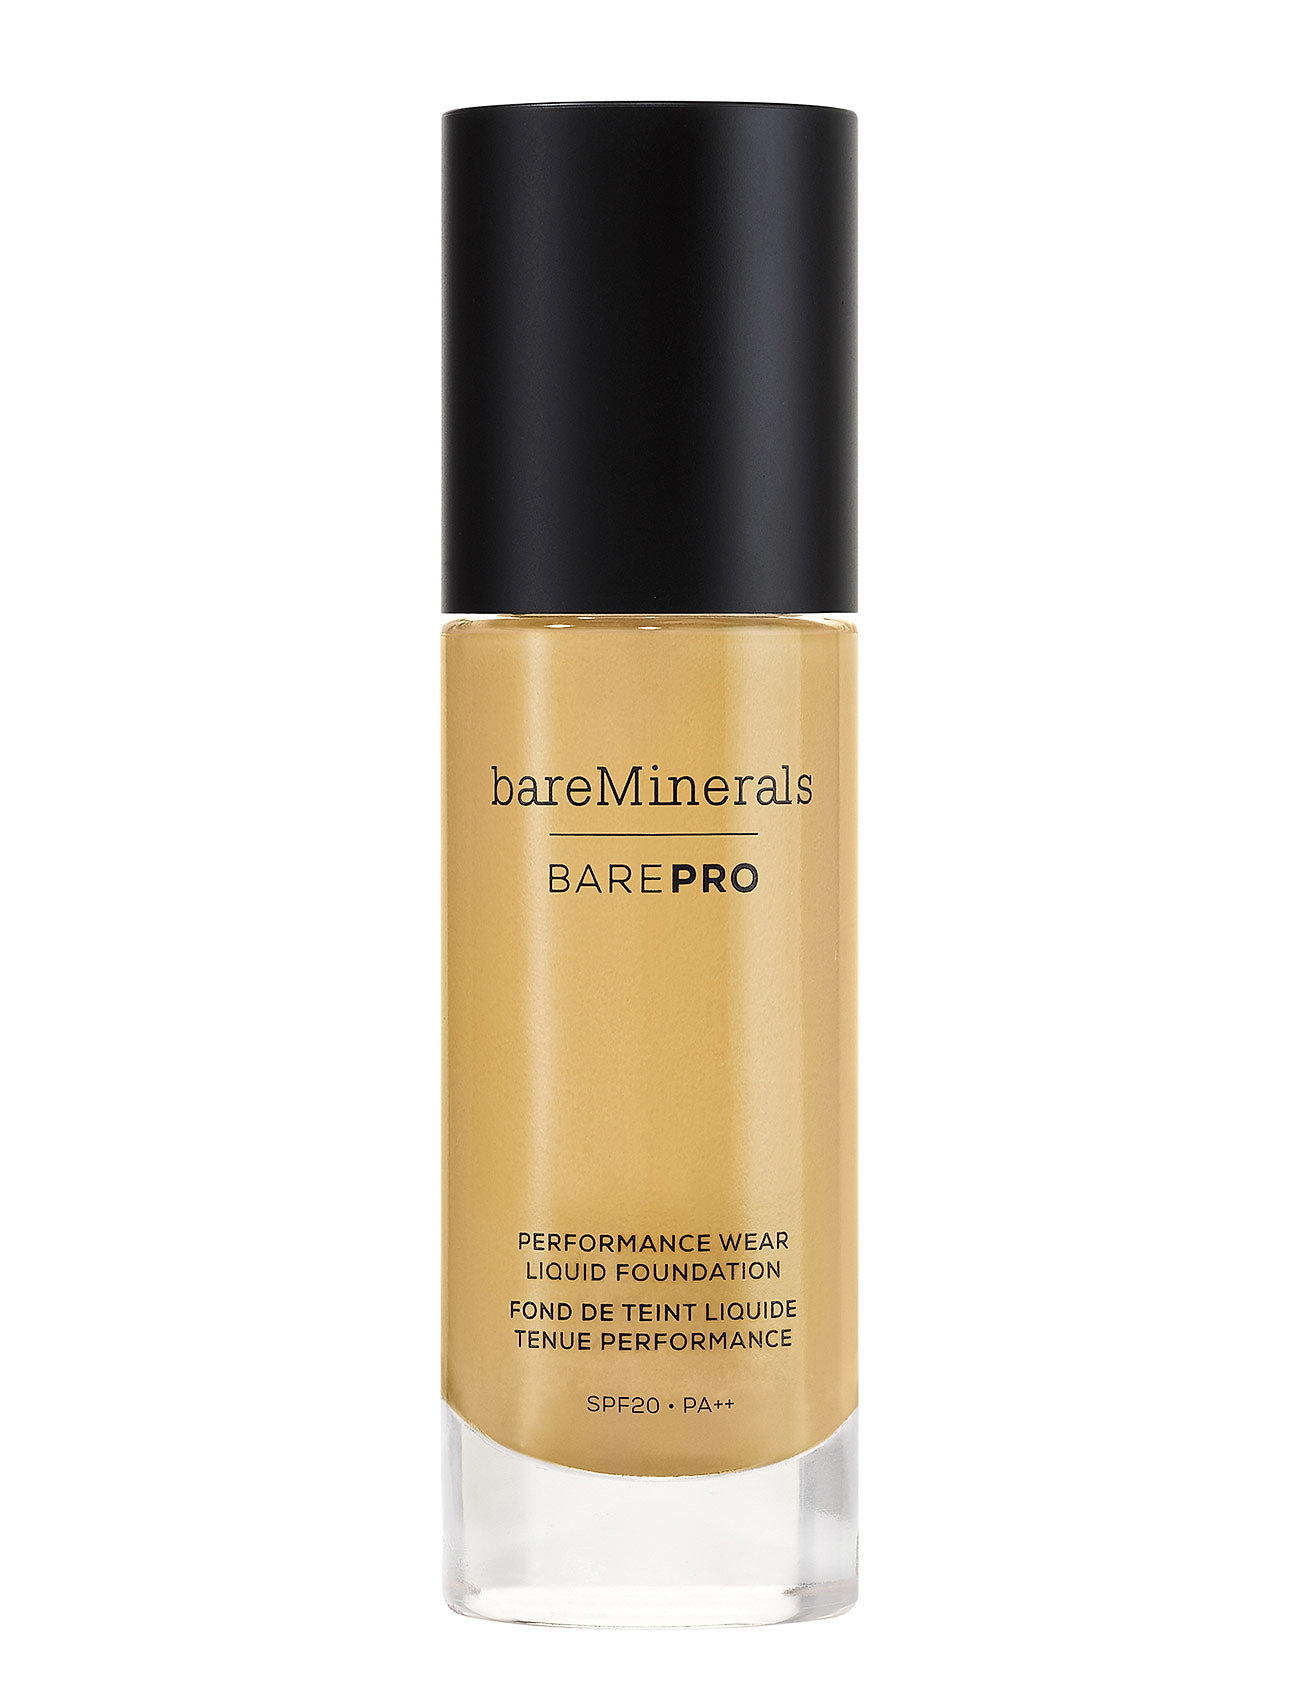 Image of Barepro Performance Wear Liquid Foundation Spf 20 Foundation Makeup BareMinerals (3067521661)